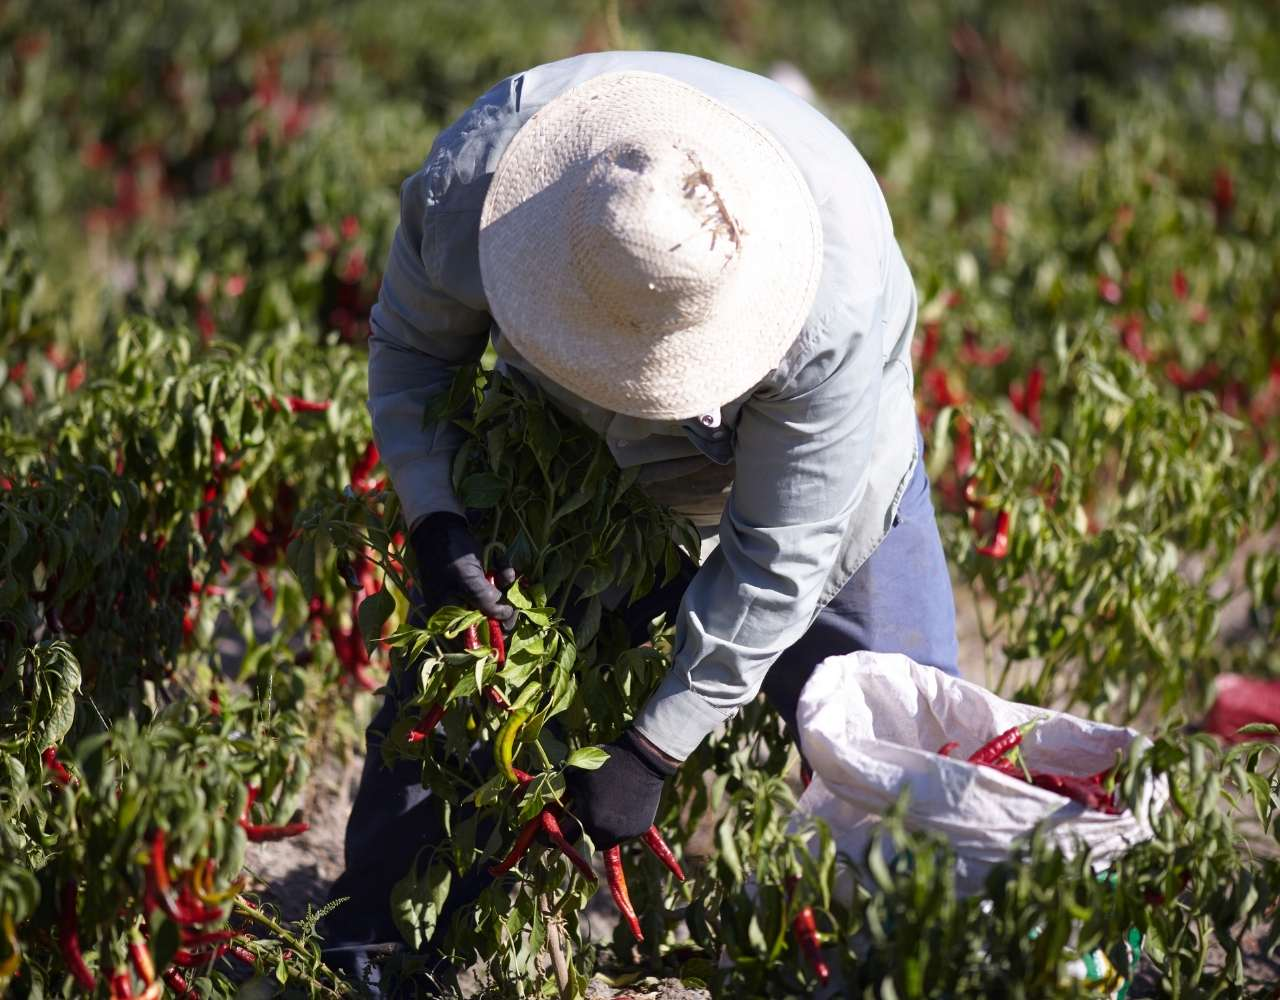 Harvesting peppers in La Vera Caceres